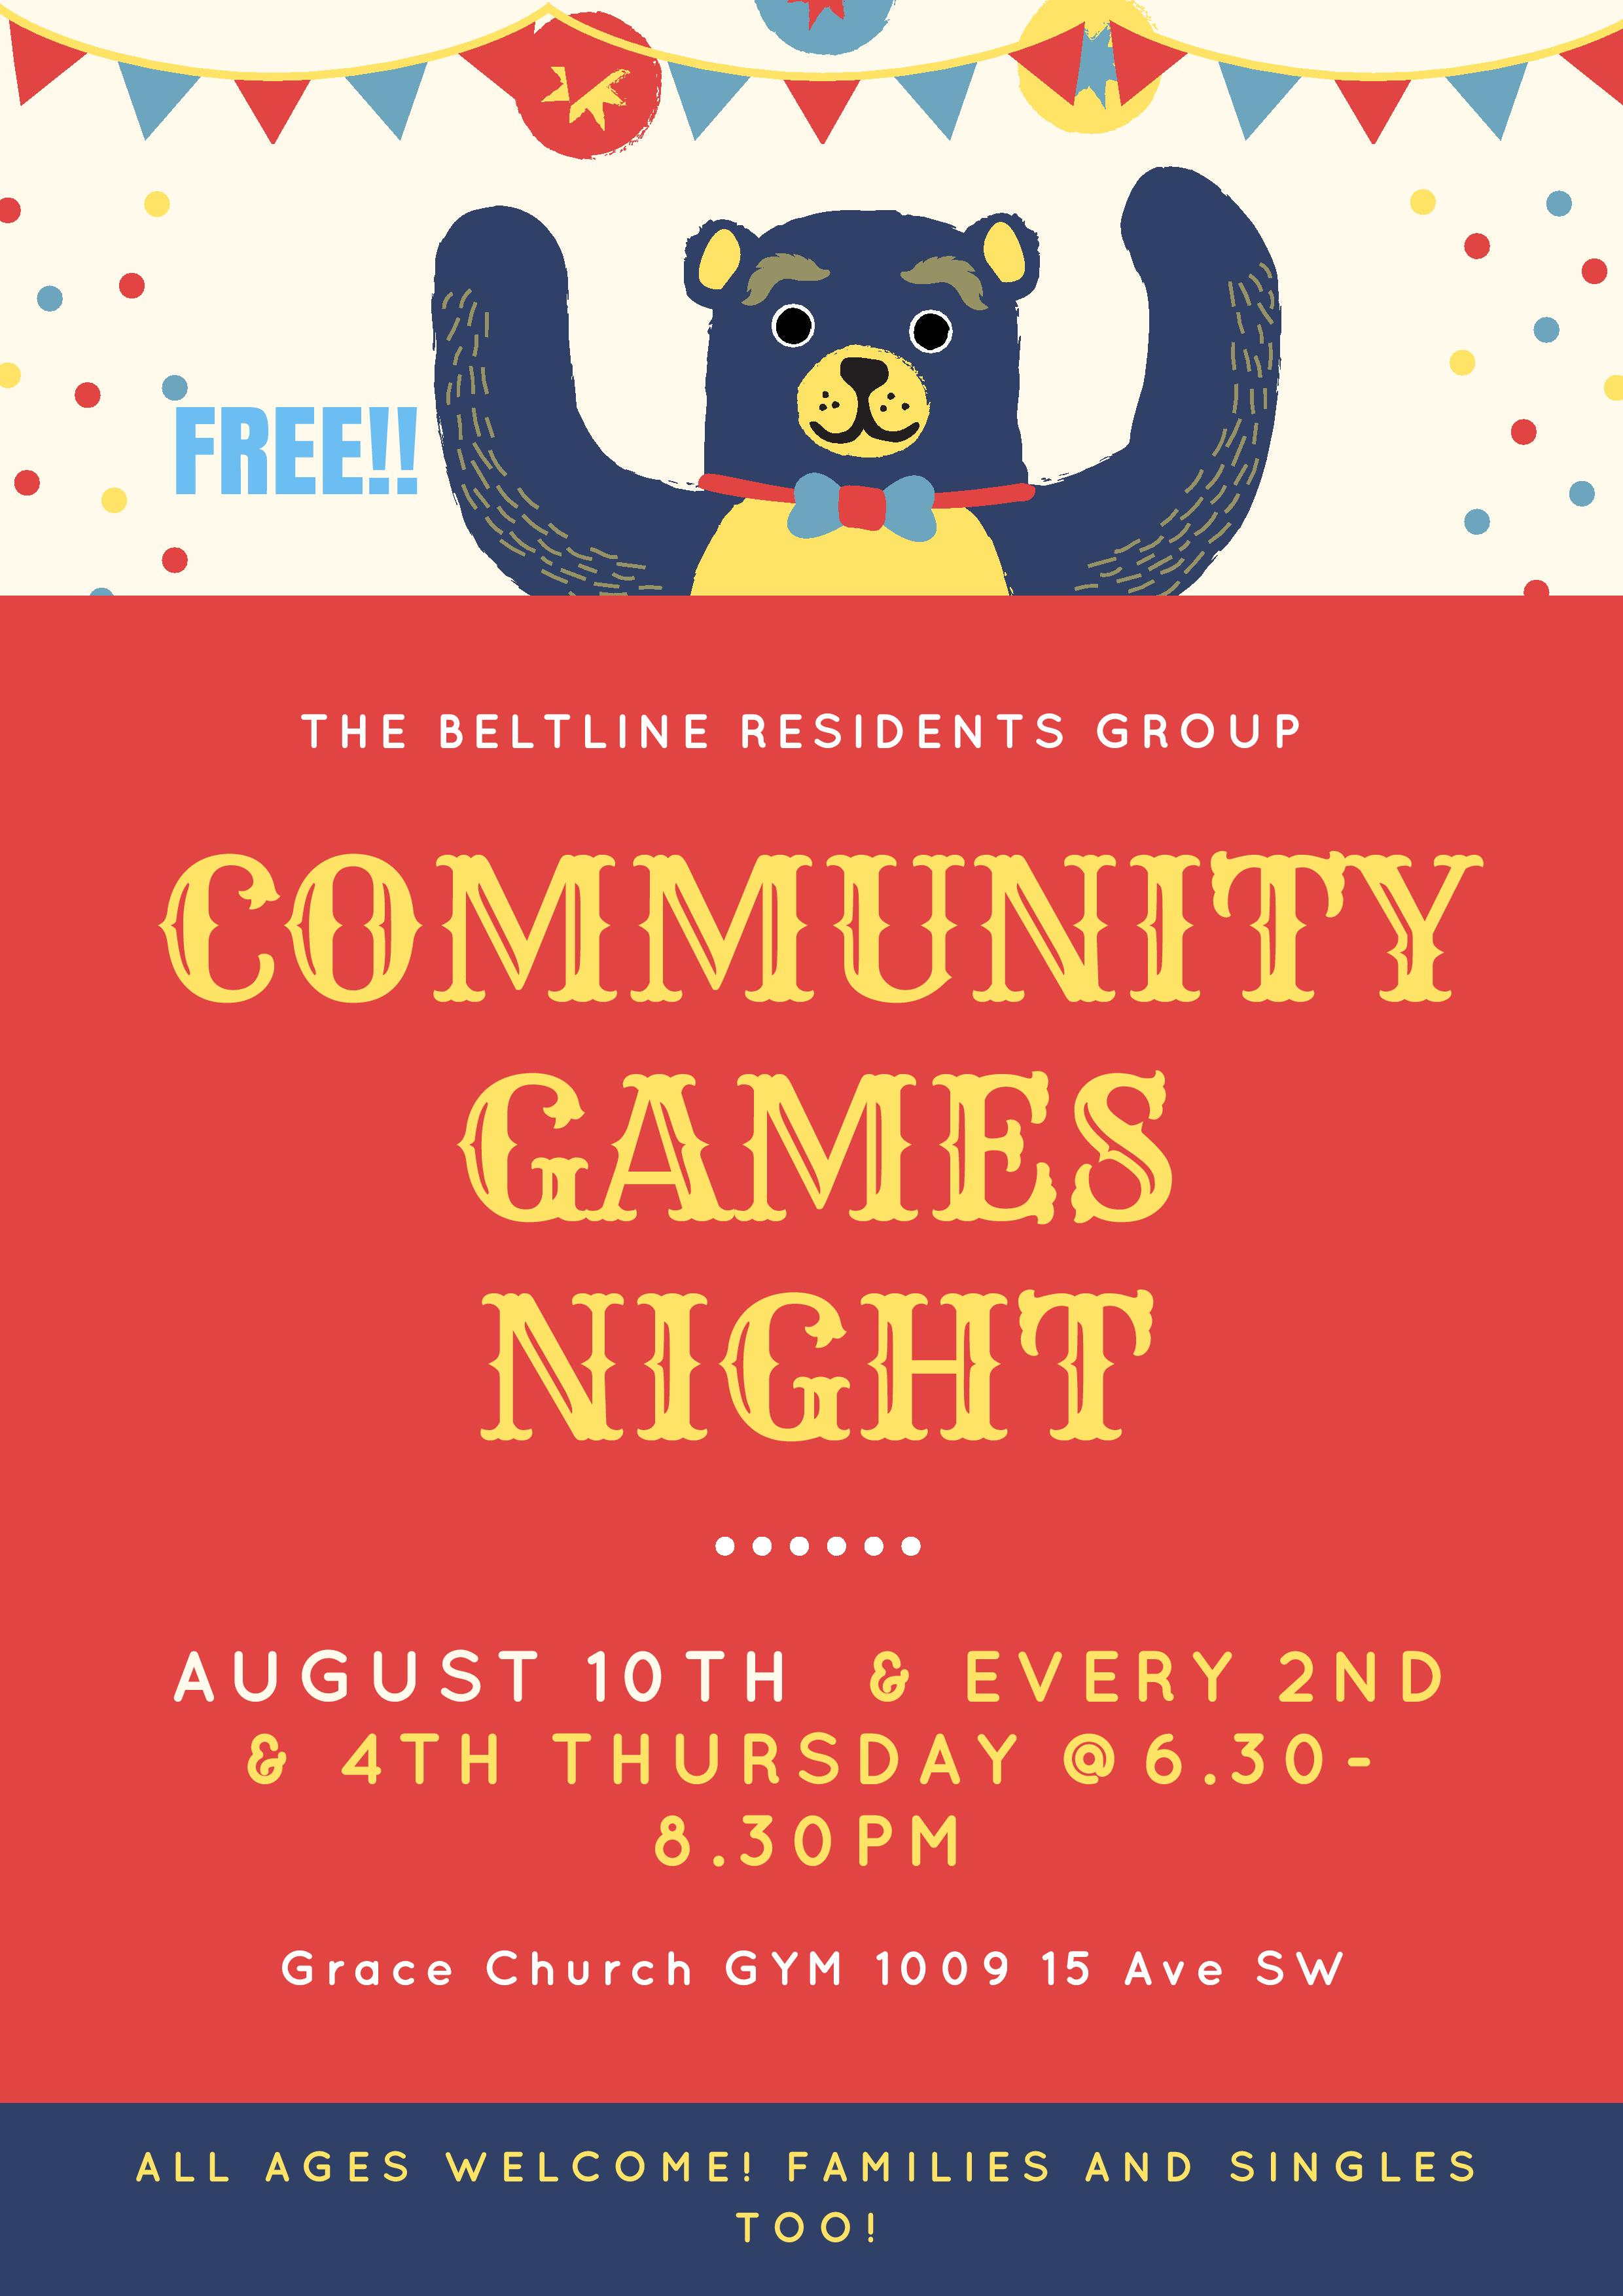 Games_night_August_Poster-page-001.jpg